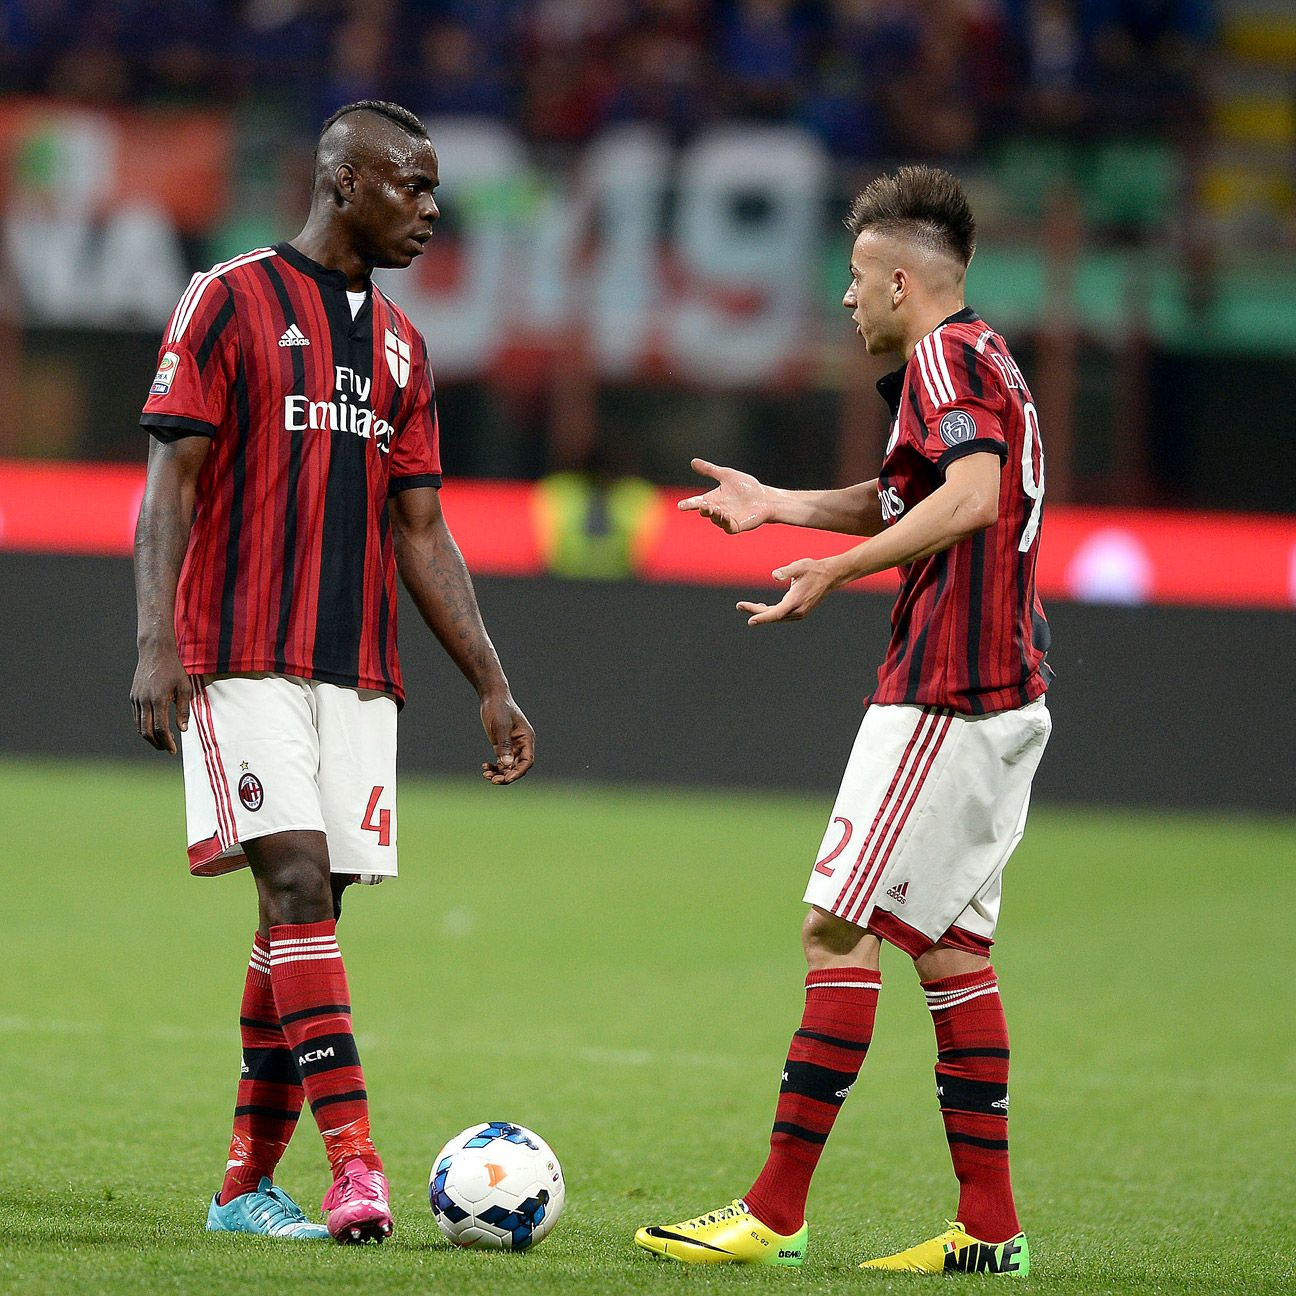 The departure of Mario Balotelli has opened the door for players like Stephan El Shaarawy, right, to flourish at Milan.